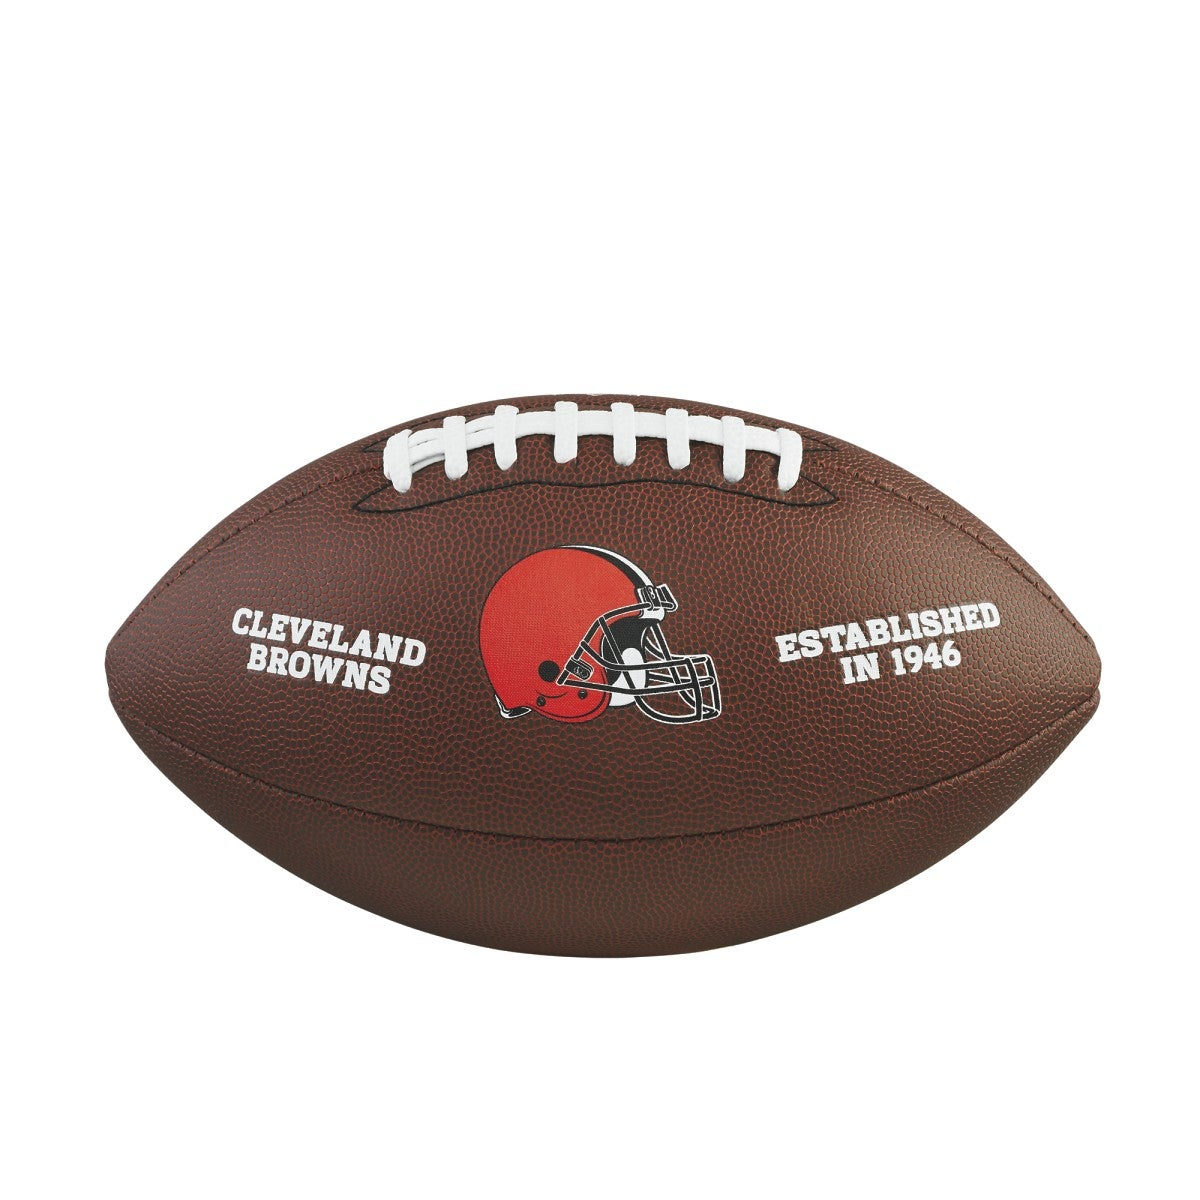 NFL TEAM LOGO COMPOSITE FOOTBALL - OFFICIAL, CLEVELAND BROWNS